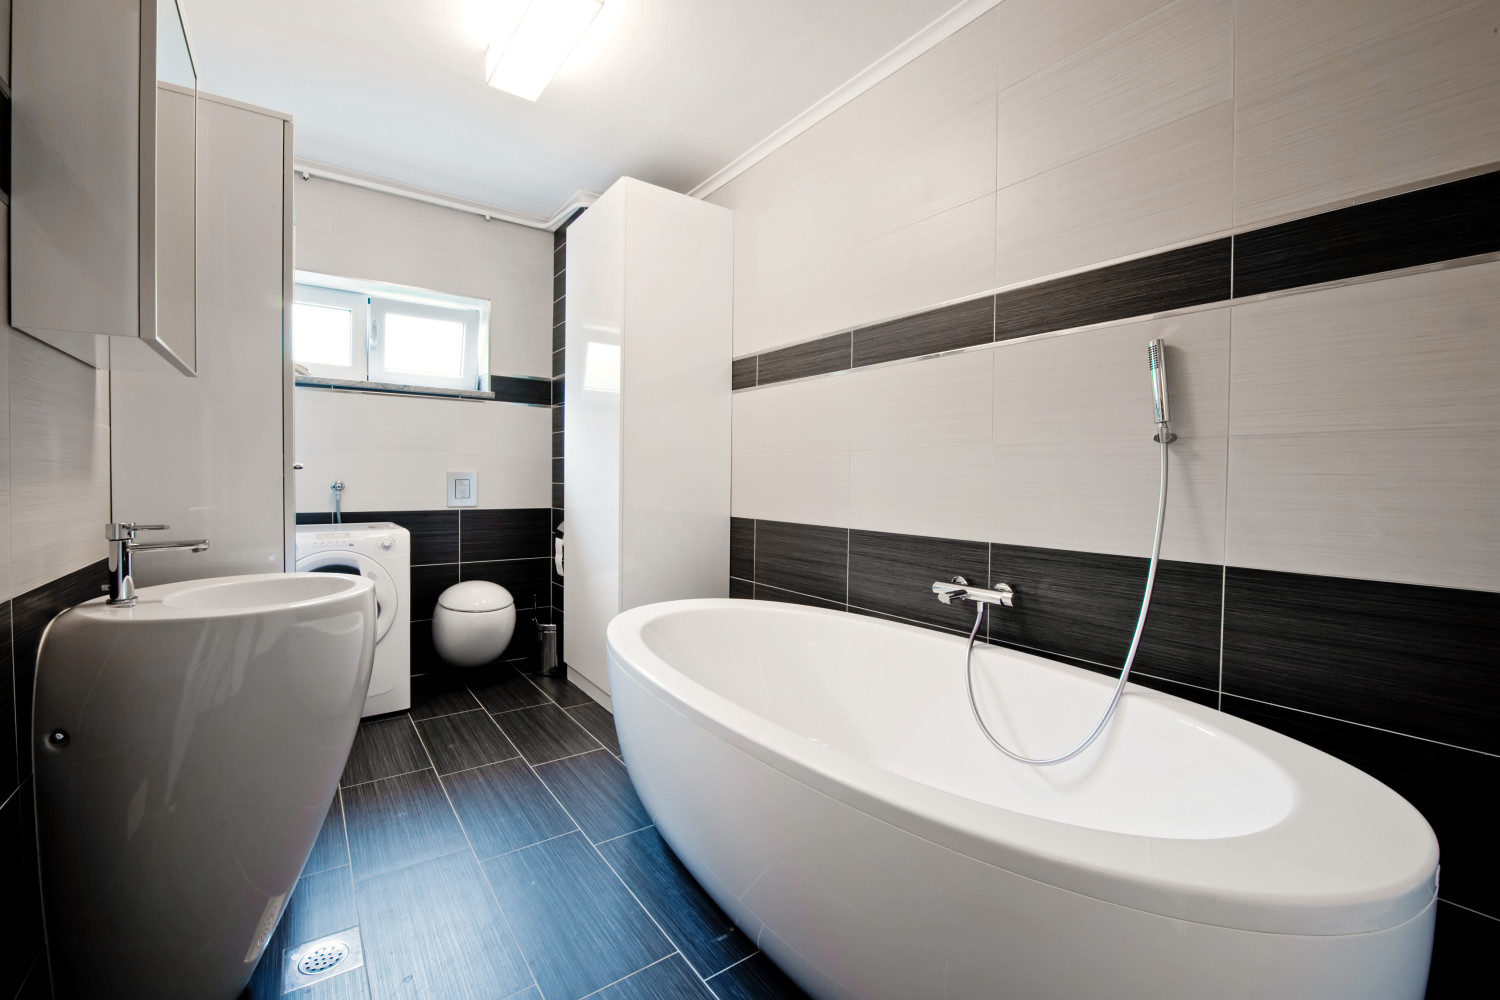 Spruce up your bathroom with a renovation this season!